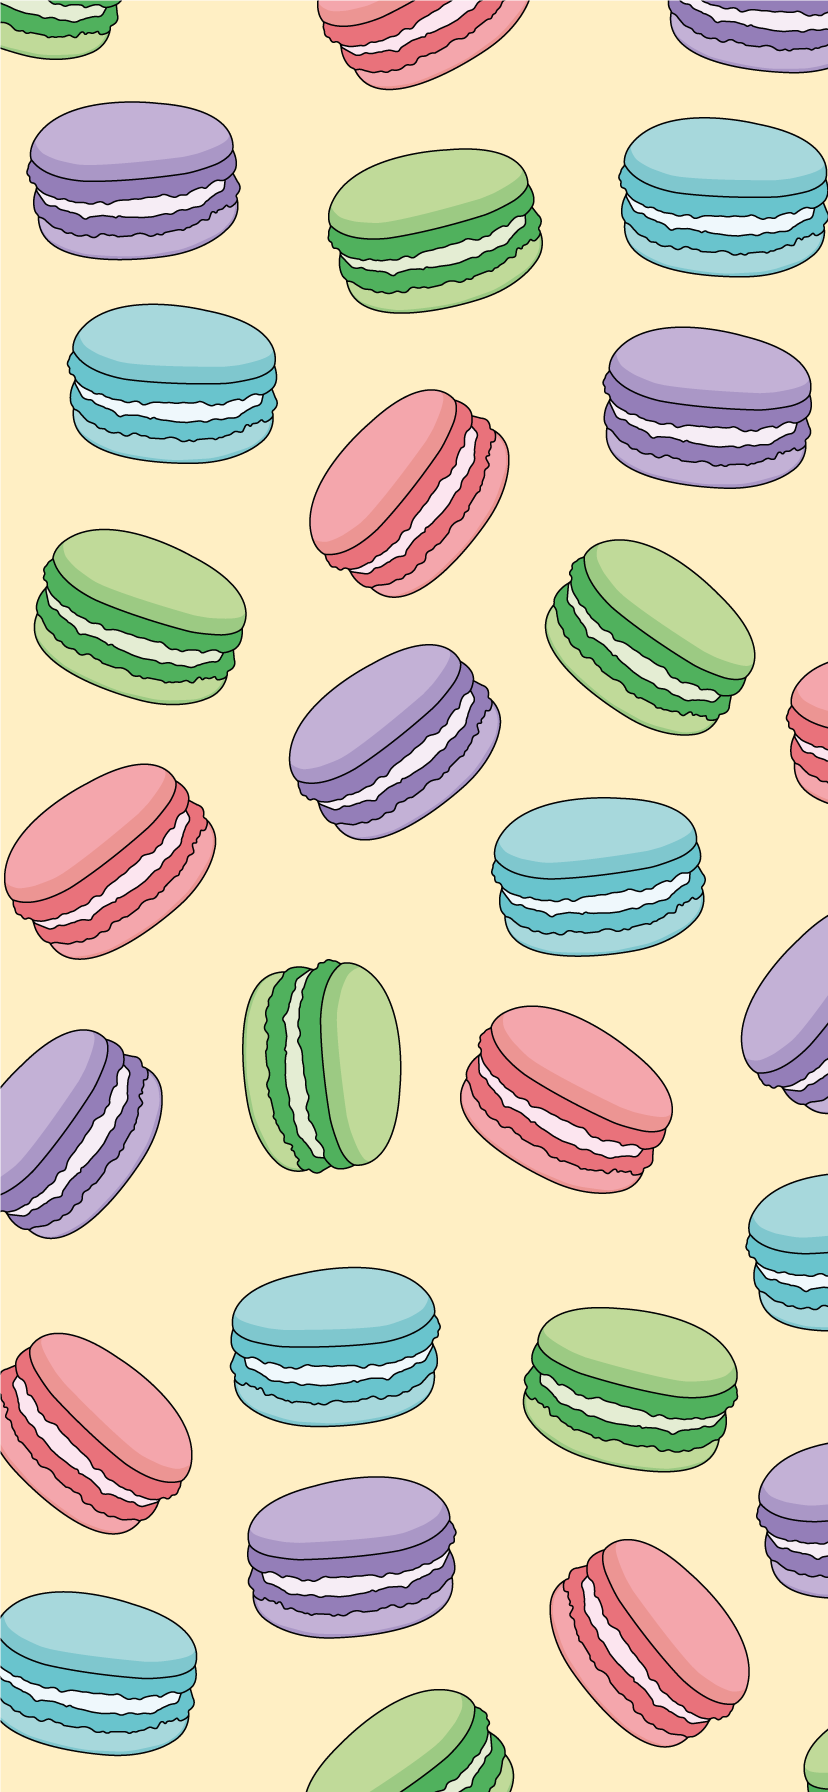 'Multiple Macarons' Sticker by IsabelleAnne Macaron